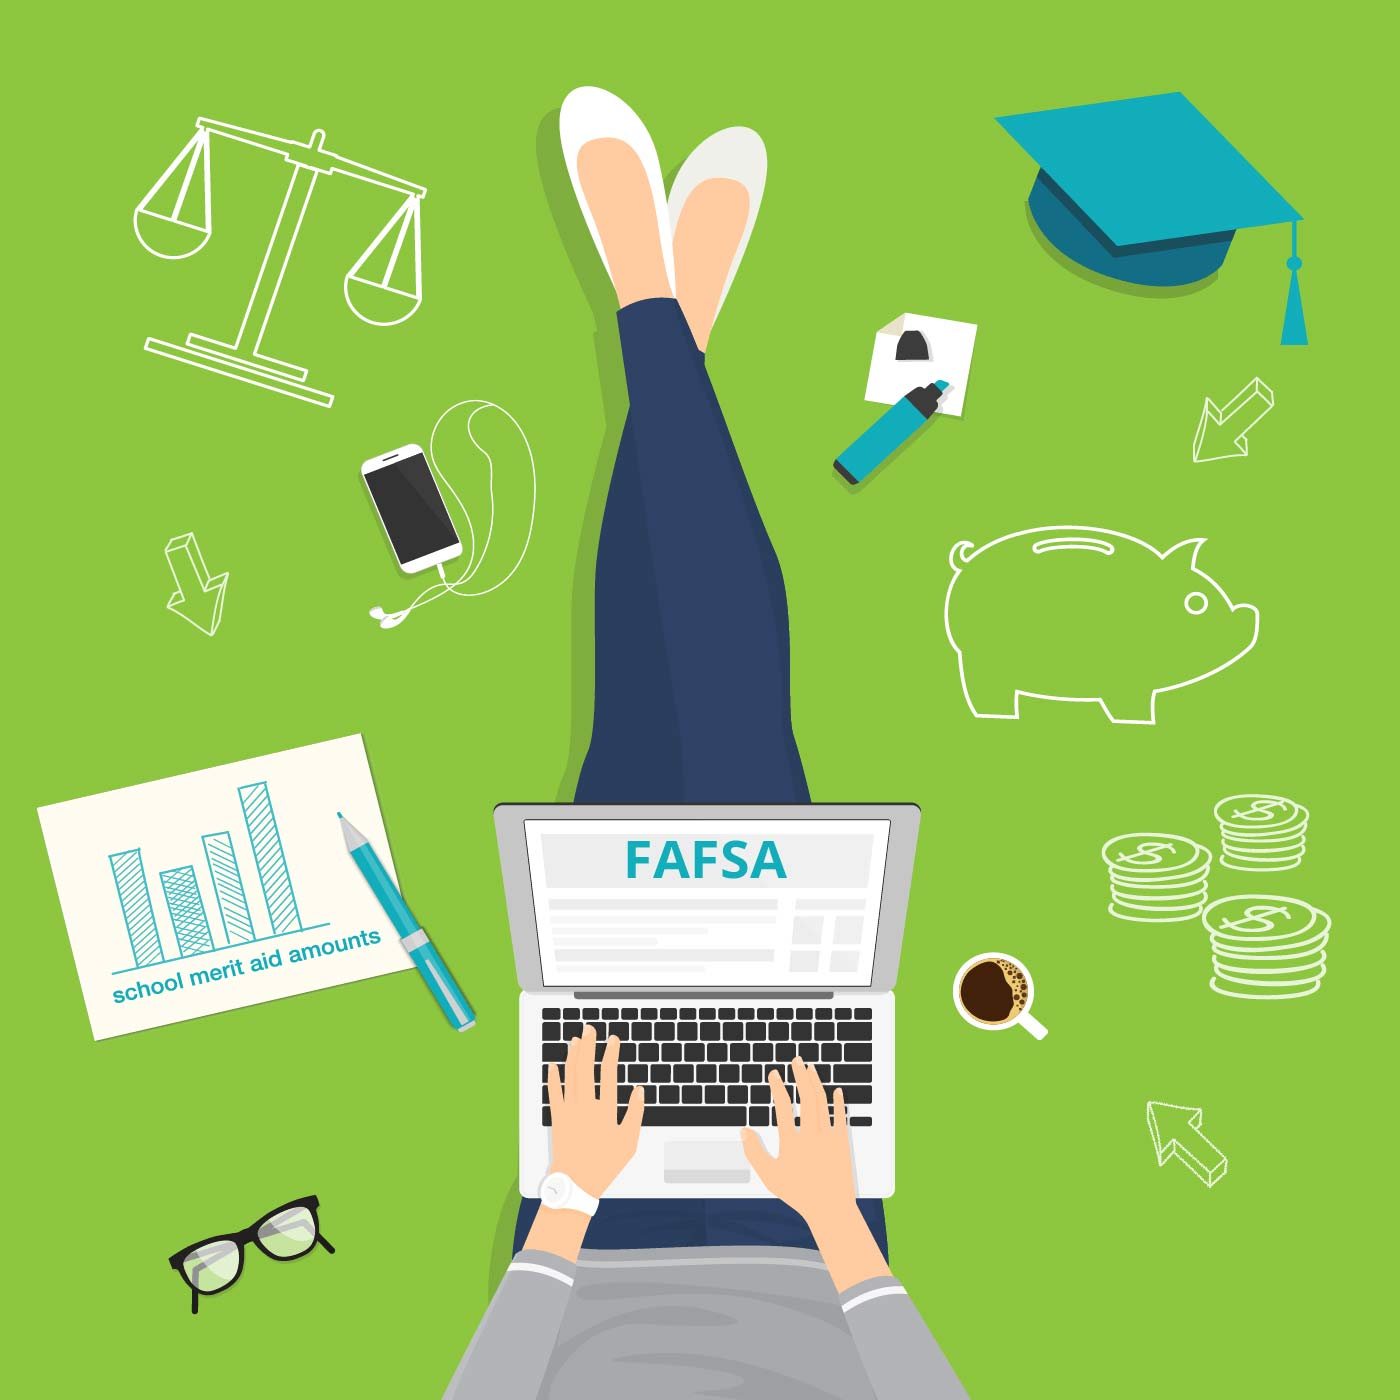 Clipart of a person working on a laptop, their screen says FAFSA